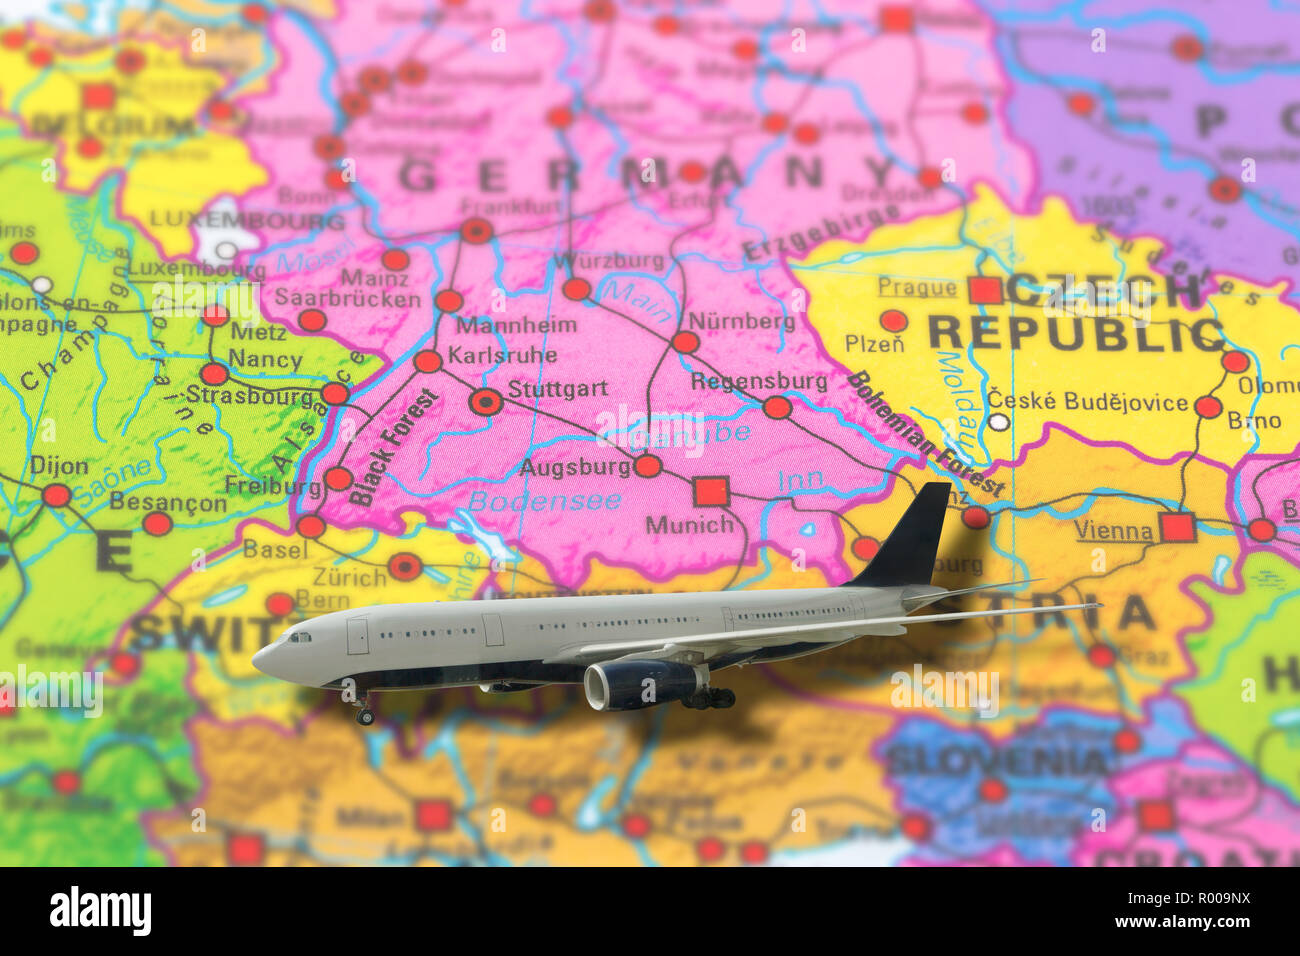 Munich in Germany pinned flight travel of plane on colorful ...